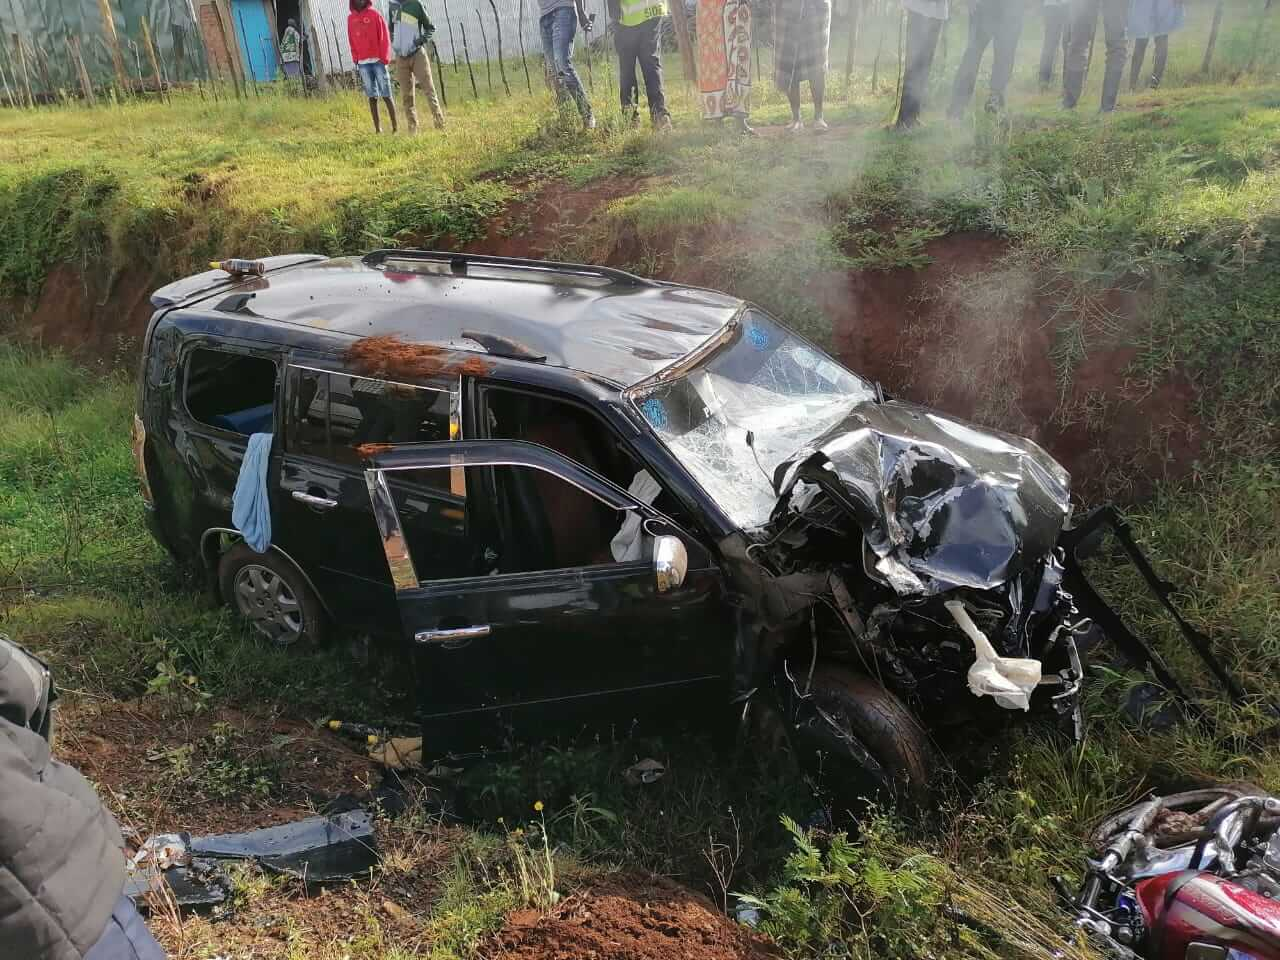 Grisly Accident Claims Lives of 3 in Eldoret